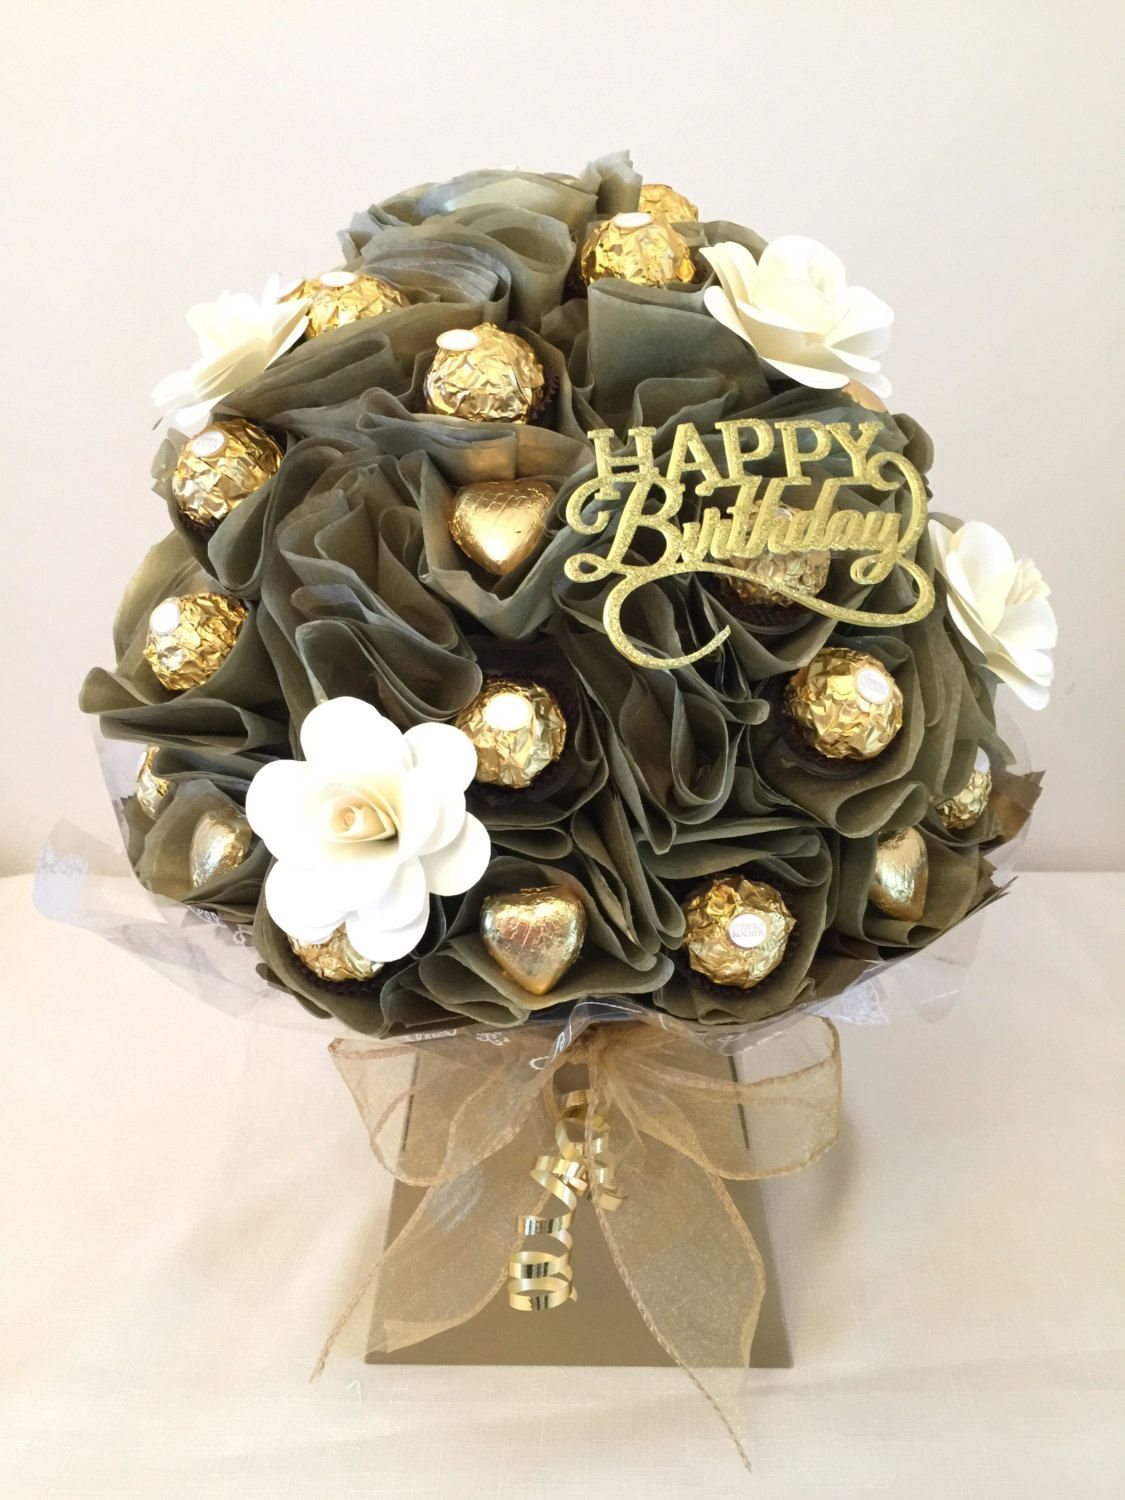 Chocolate bouquet on pinterest candy flowers bouquet of chocolate - Ferrero Rocher Chocolate Bouquet Perfect Gift For Birthday Anniversary Get Well Soon